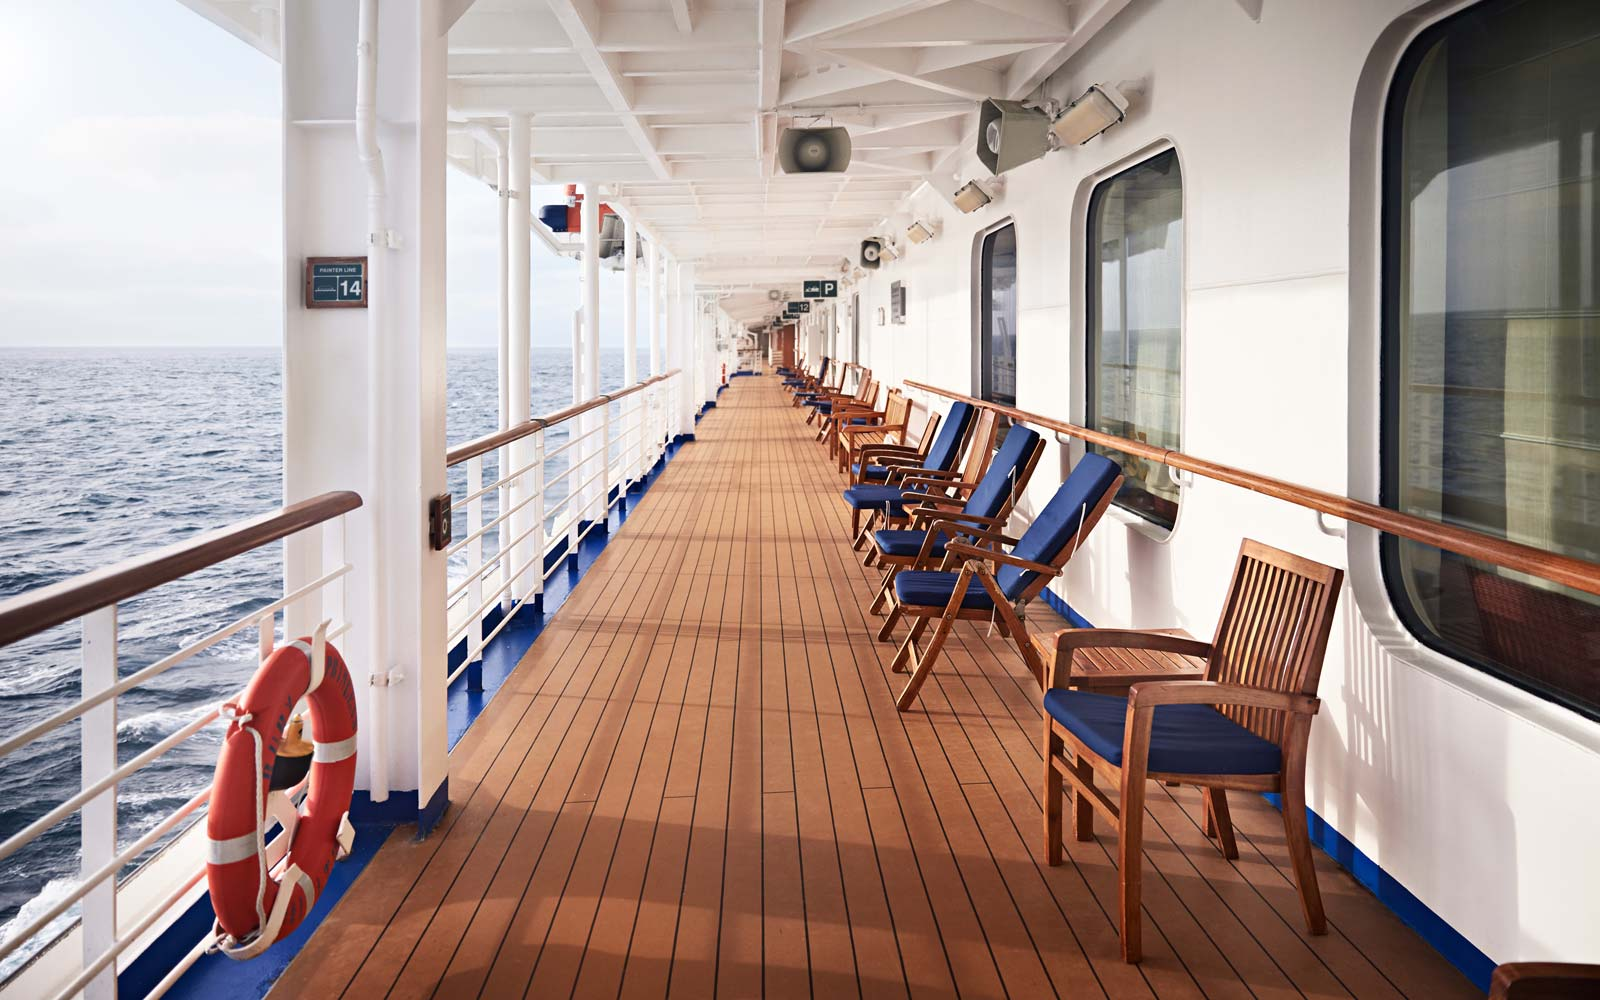 Chairs on ship's deck